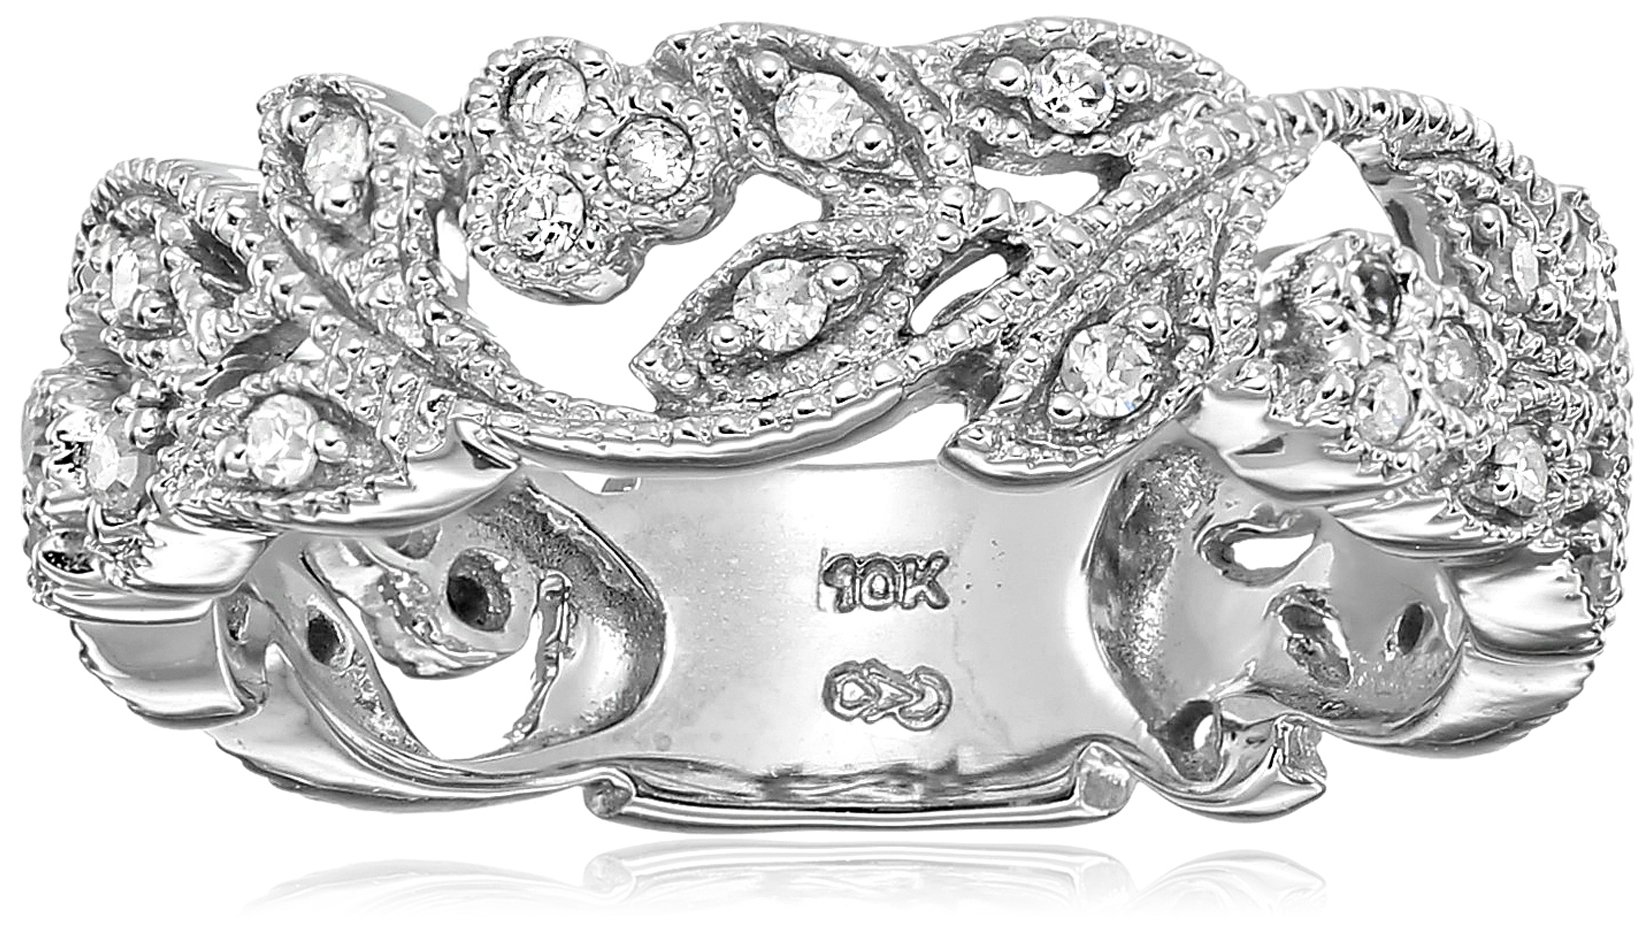 10k White Gold White Diamond Ring (1/4 cttw, H-I Color, I1-I2 Clarity), Size 7 by Amazon Collection (Image #1)